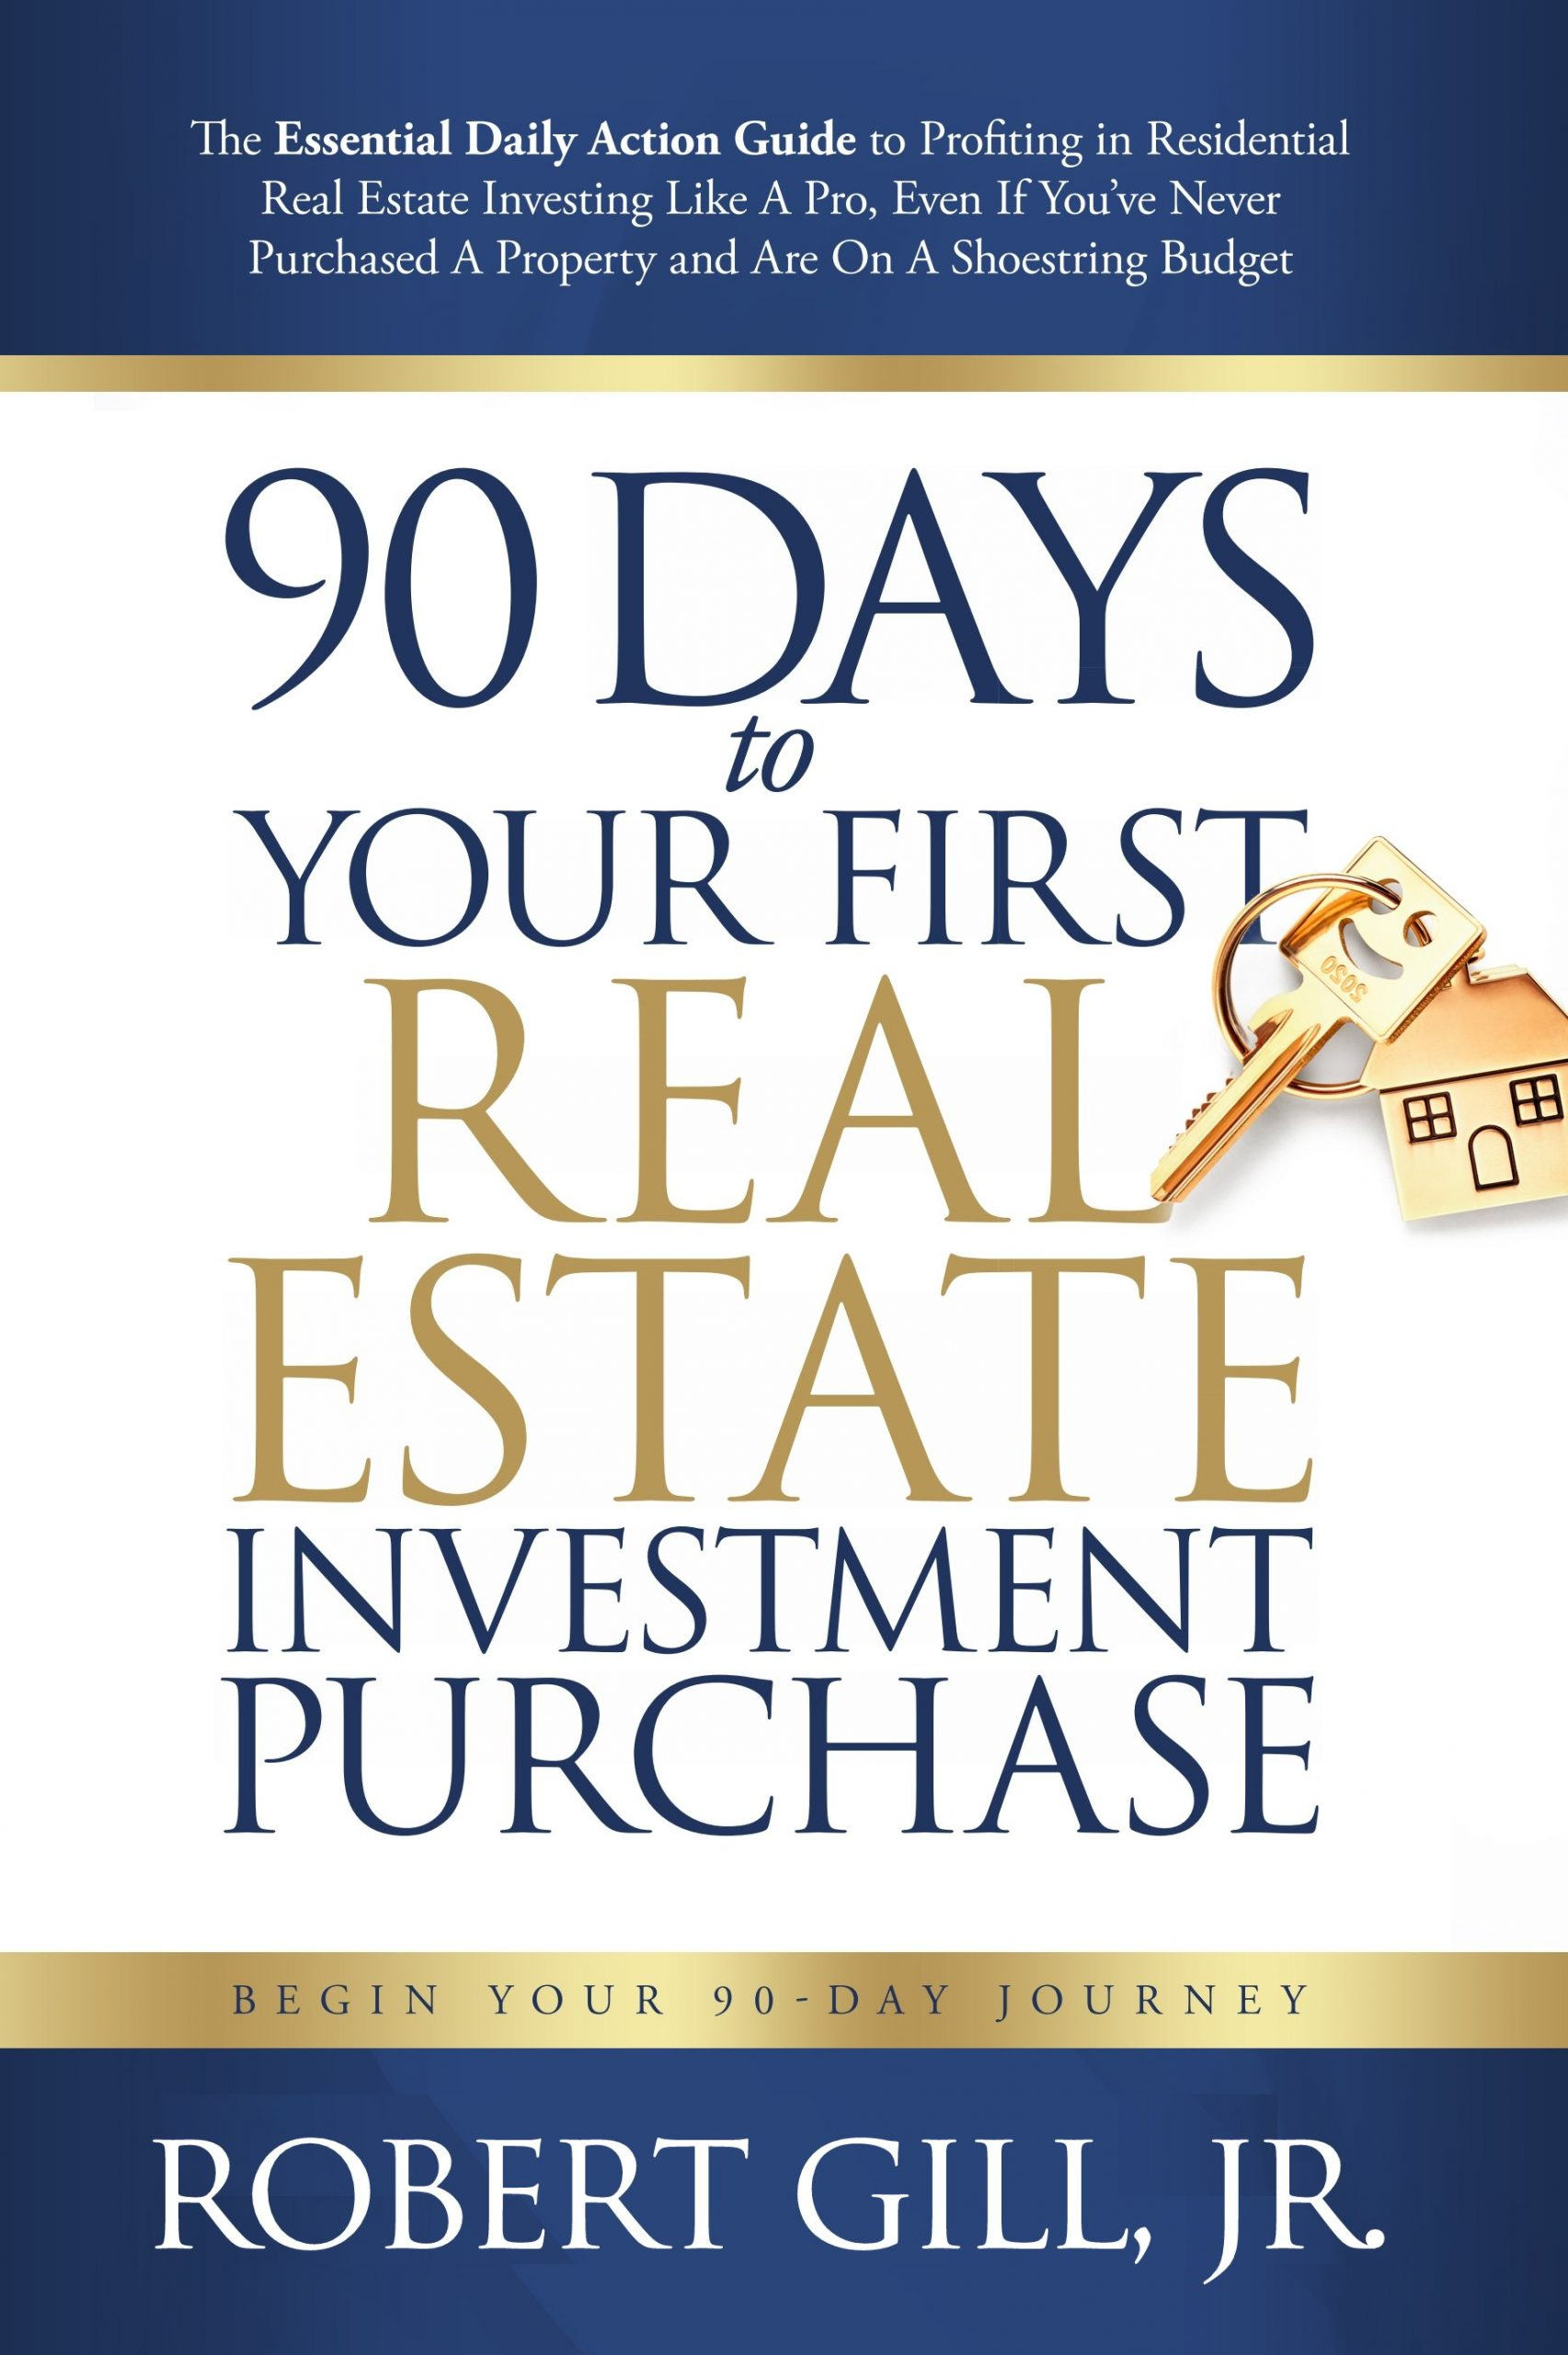 90 Days to Your First Real Estate Investment Purchase by Robert Gill Jr.